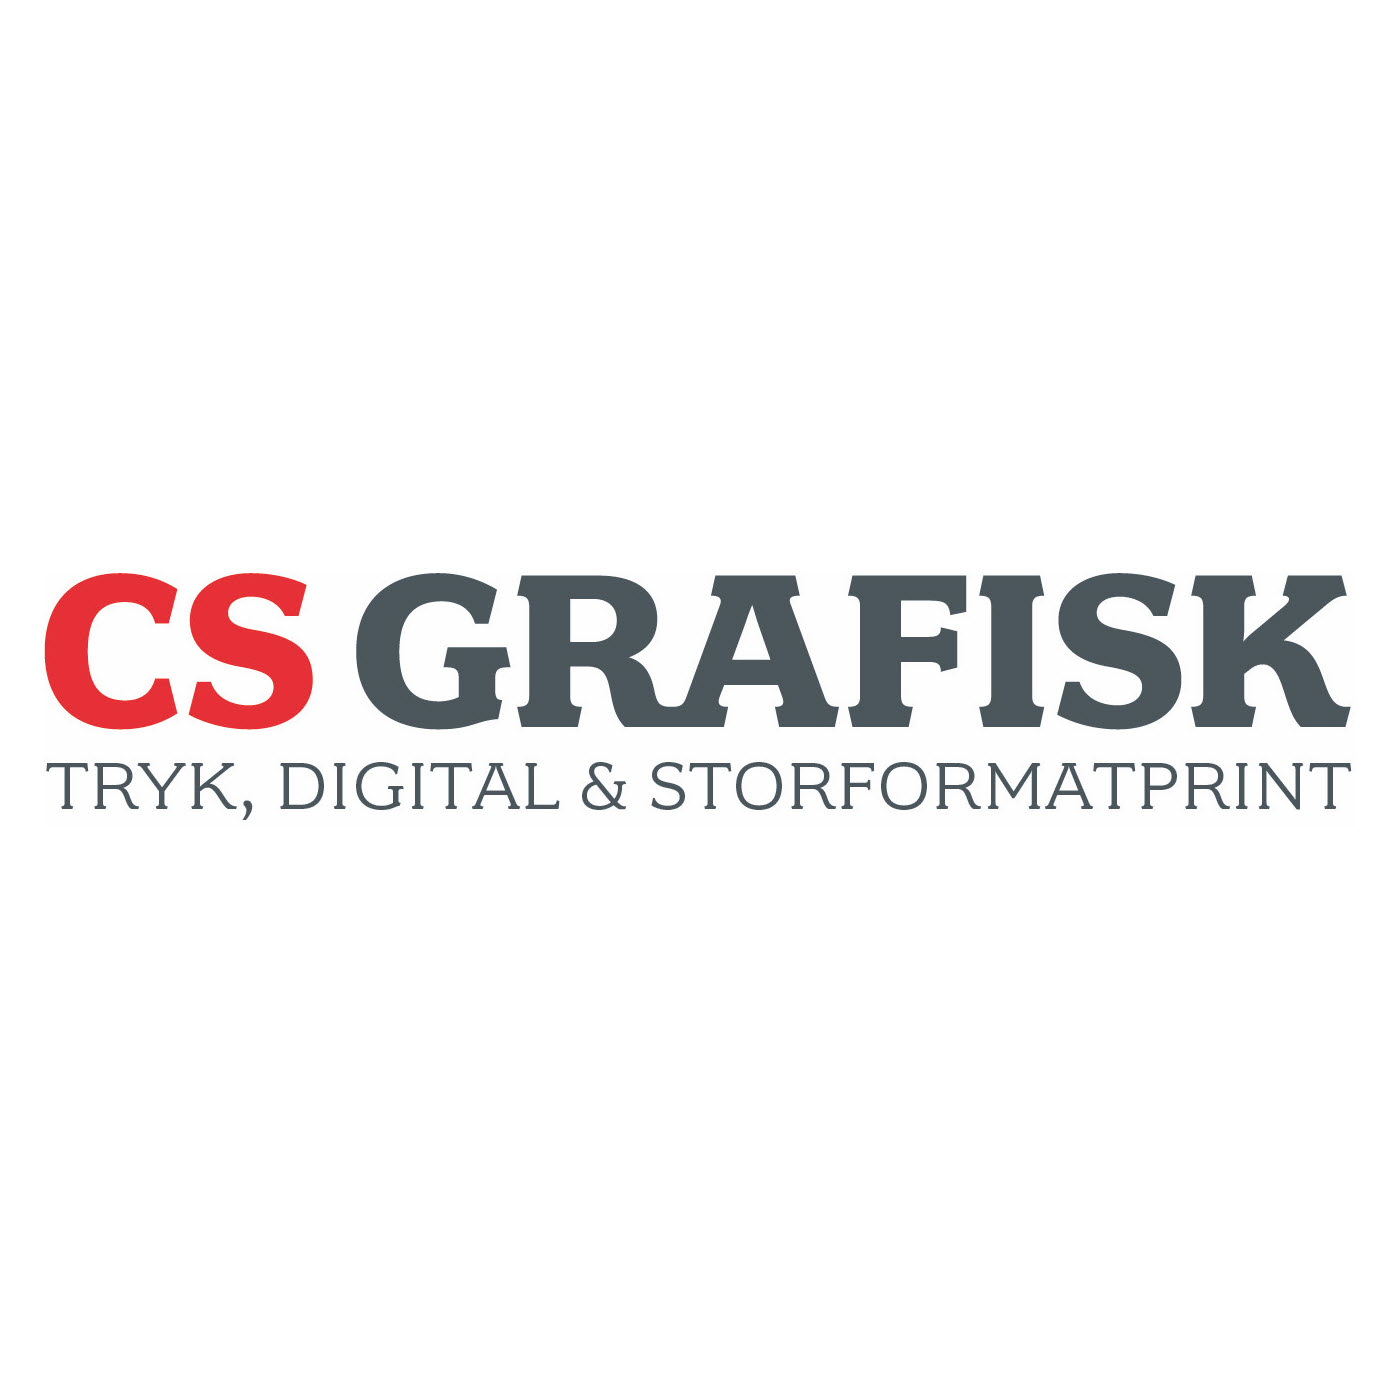 CS Grafisk A/S